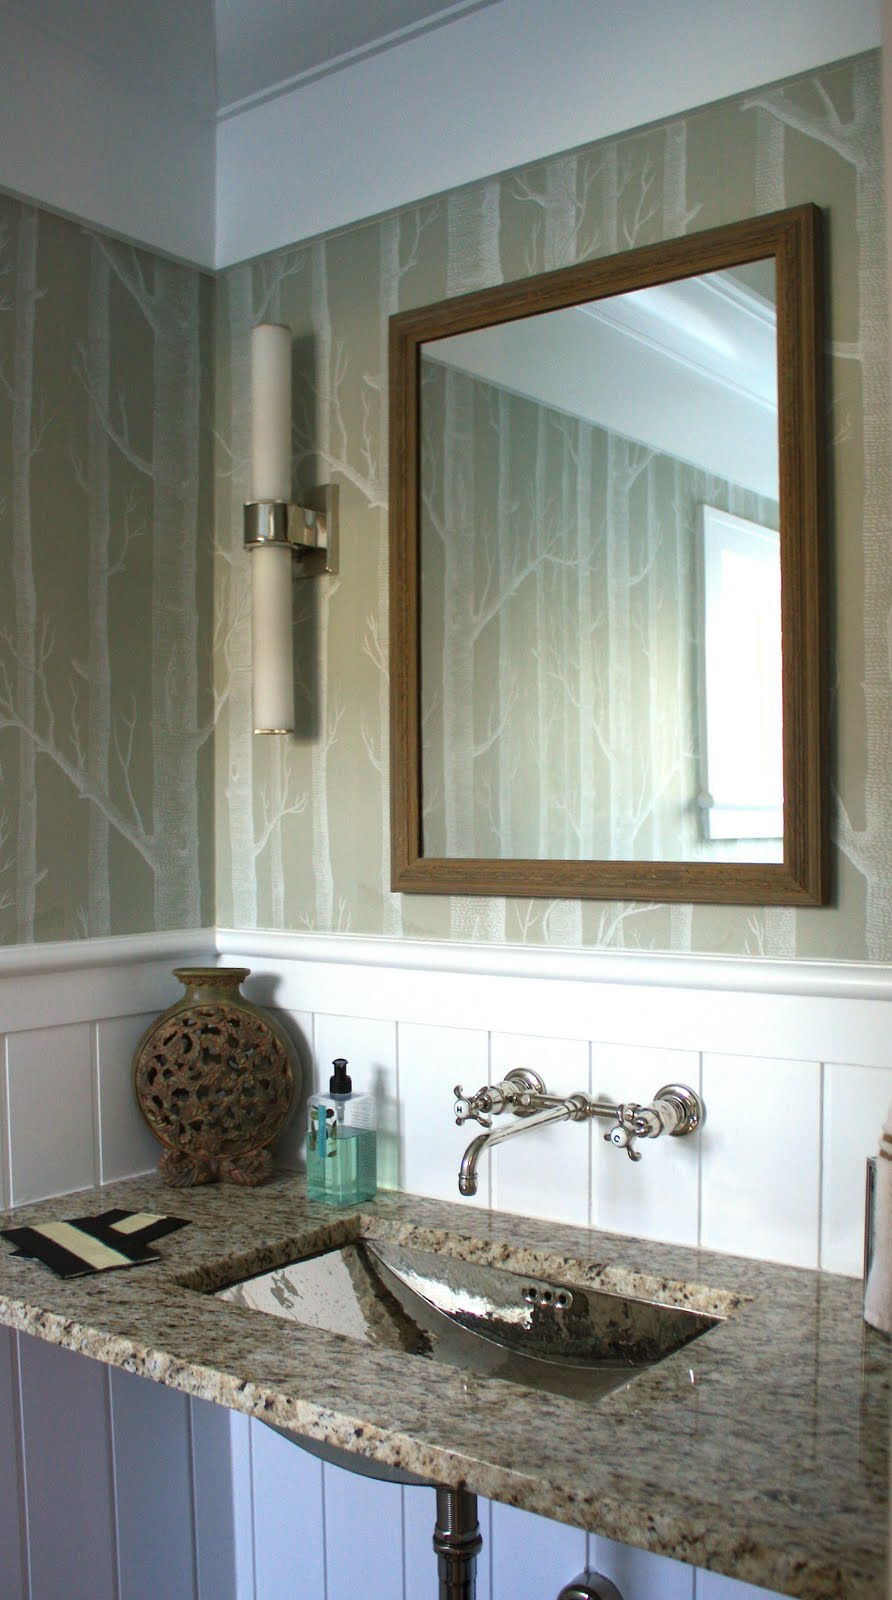 New small bathroom ideas photo gallery 2012 screen media for Small bathroom designs 2012